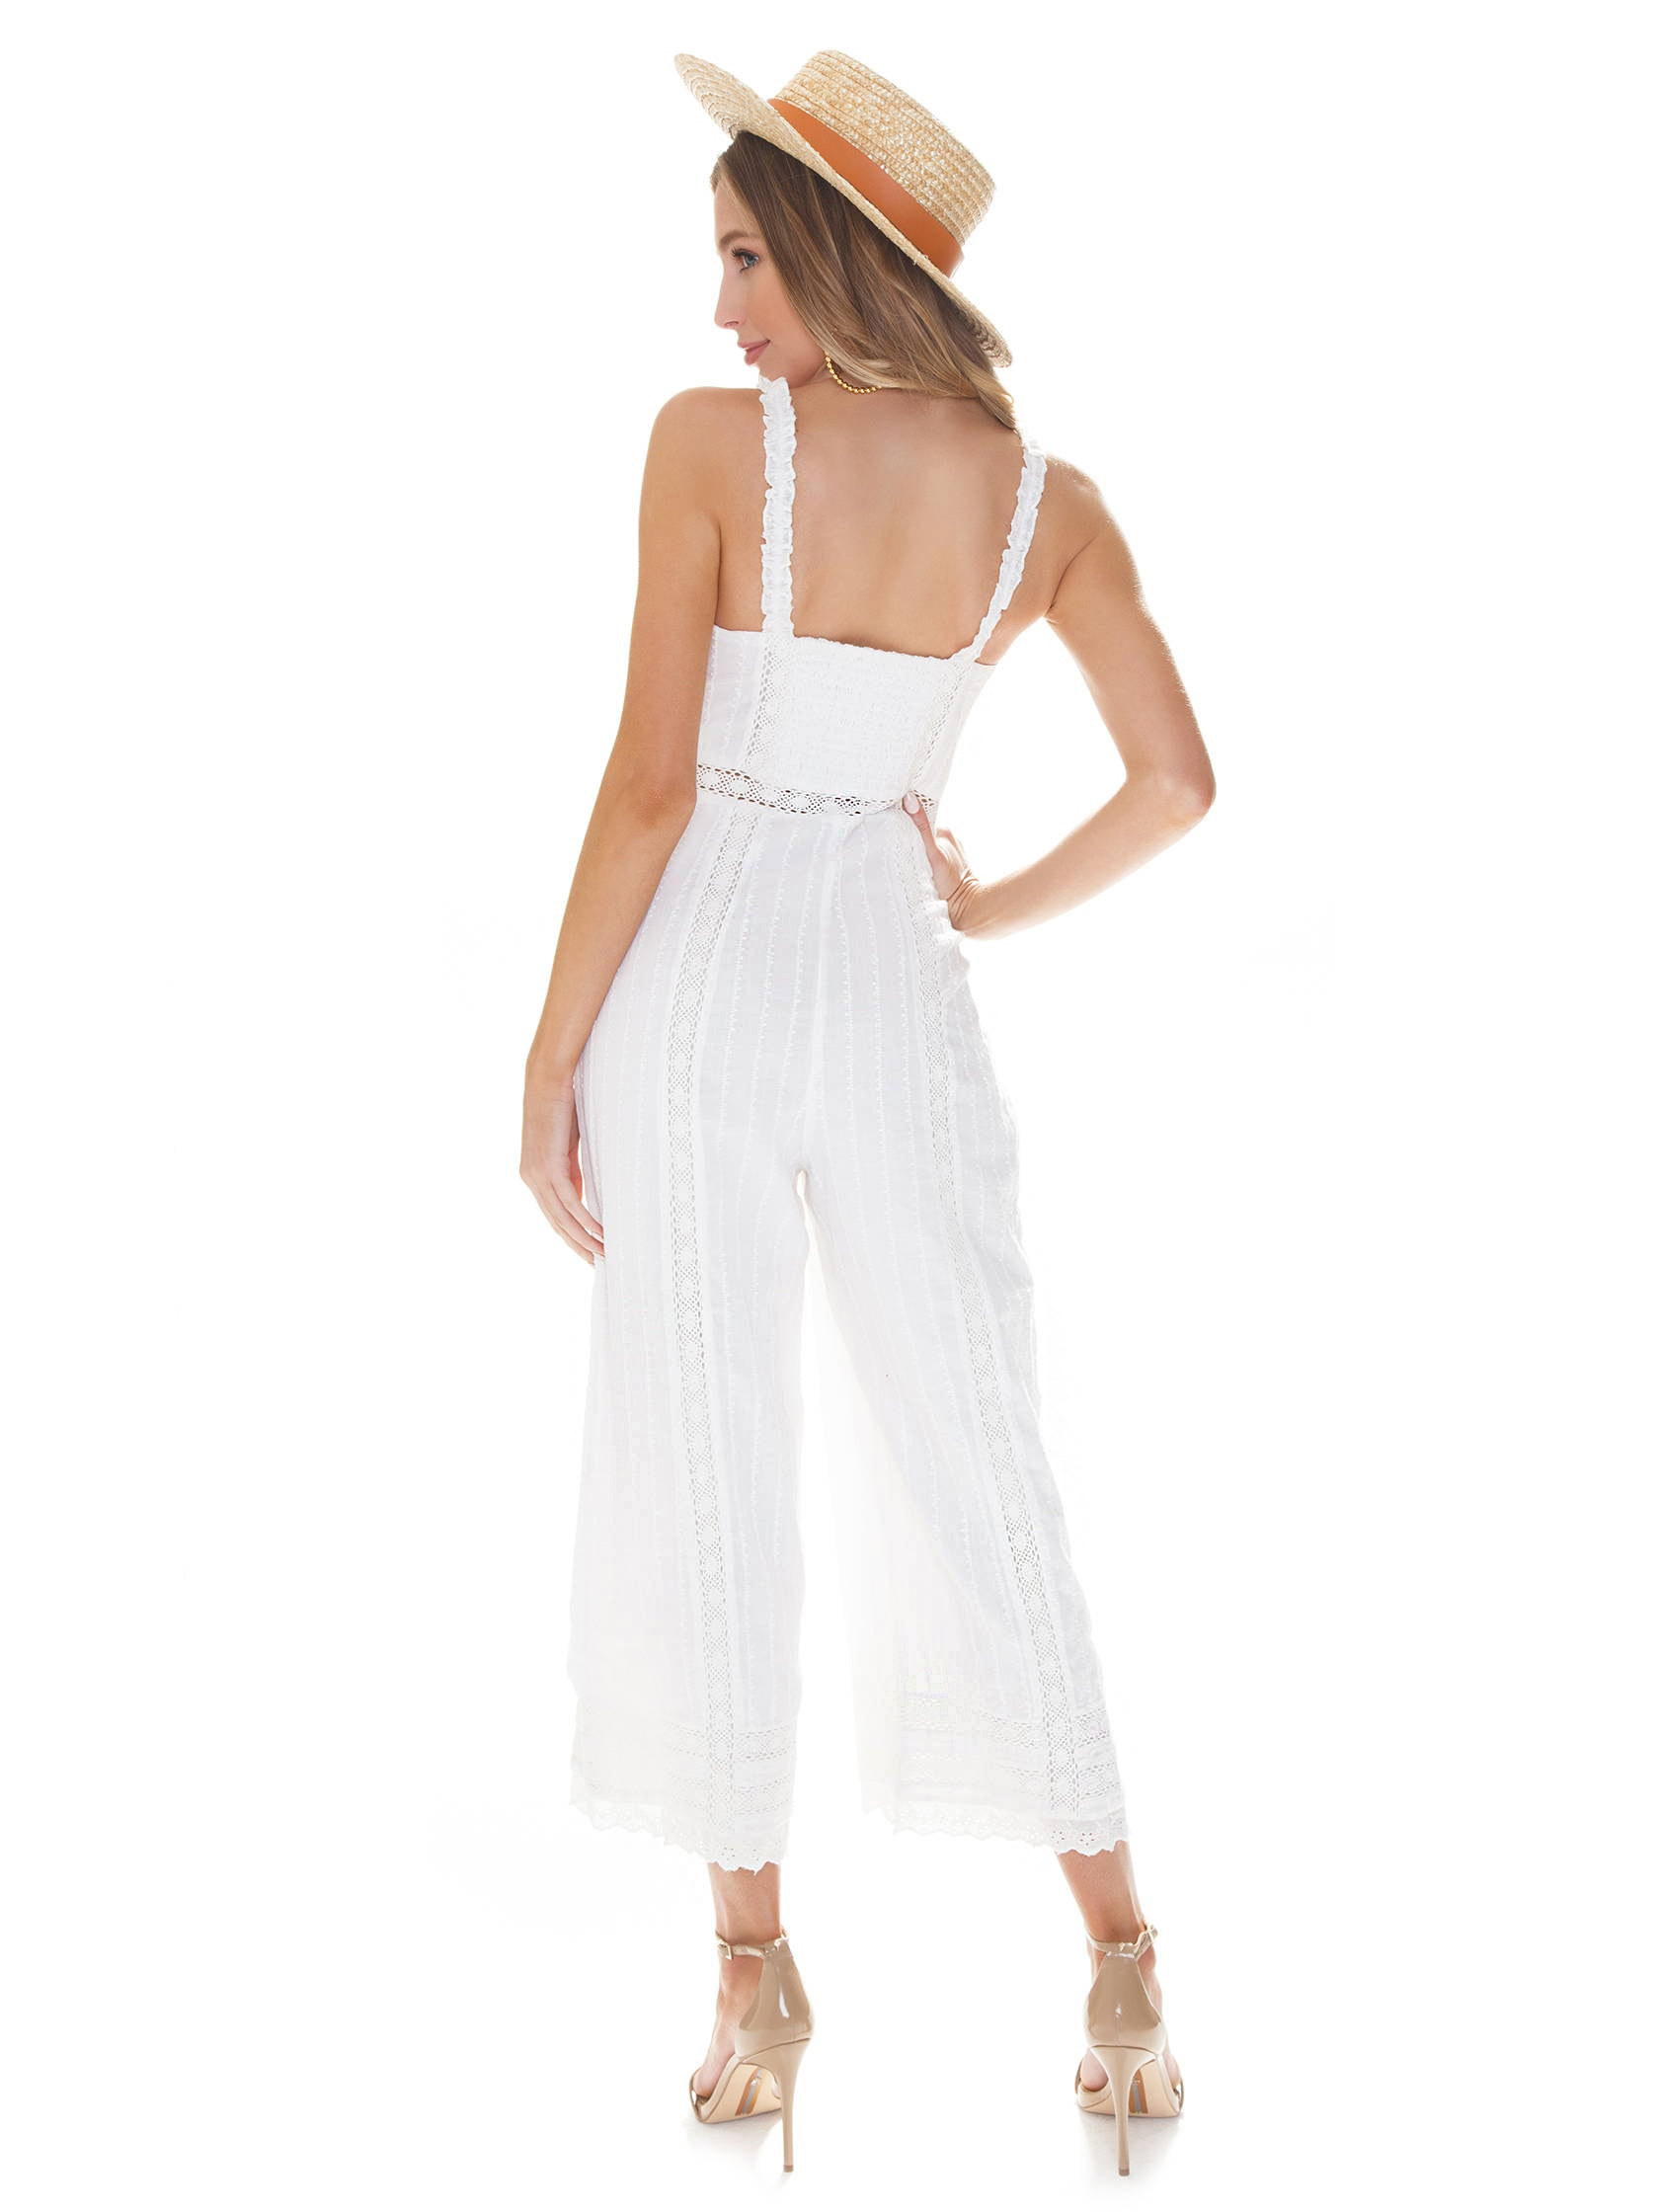 Women wearing a jumpsuit rental from Show Me Your Mumu called Greer Jumpsuit